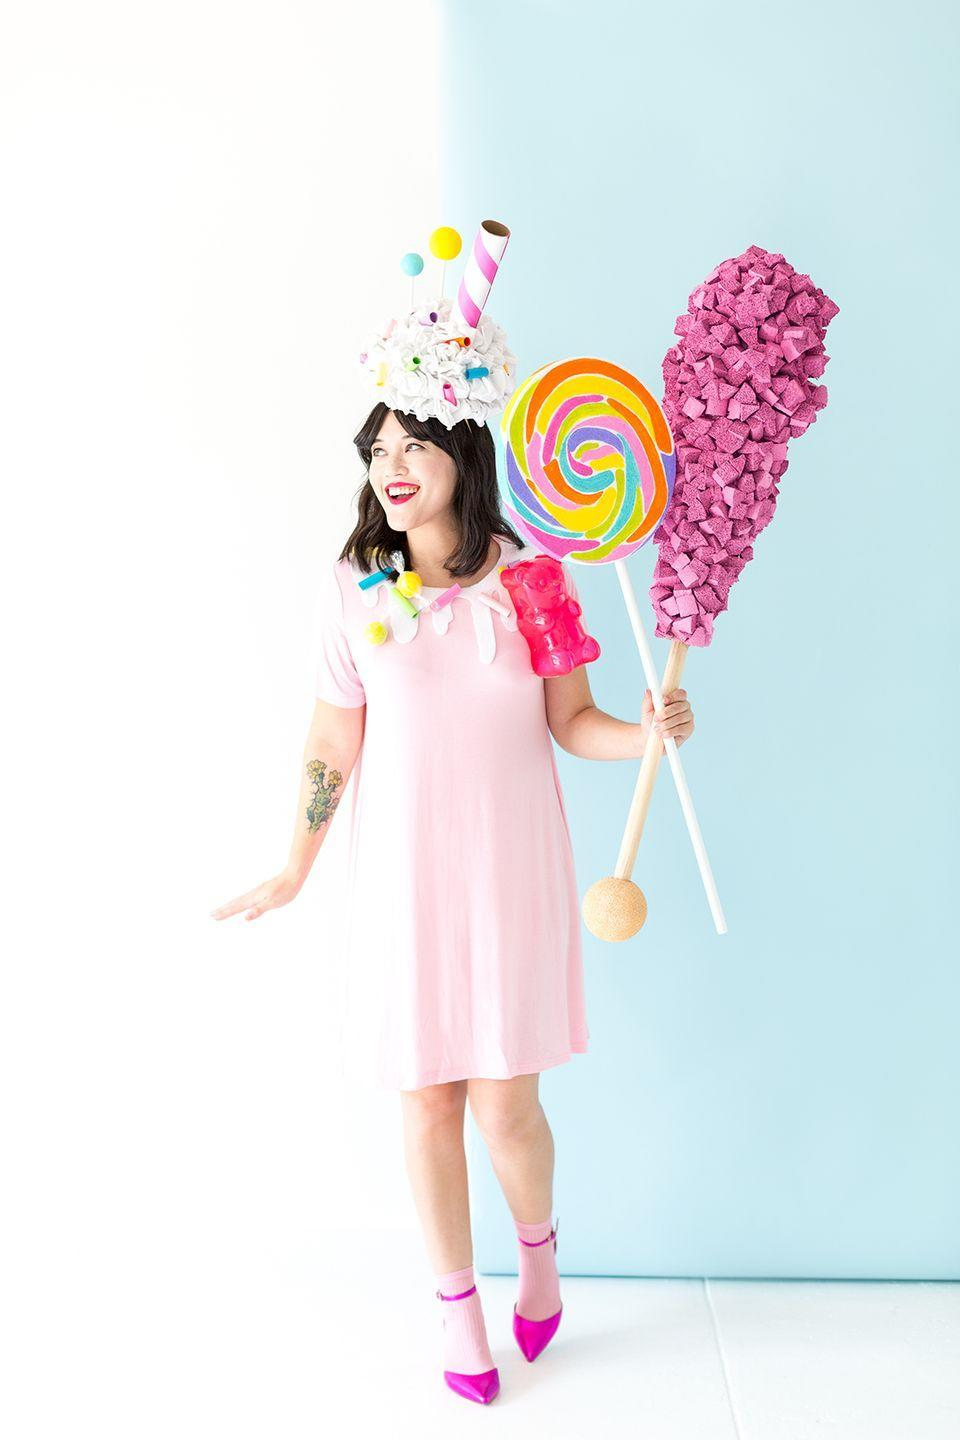 """<p>Inspired by those """"crazy"""" milkshakes that have dominated Instagram lately, this costume is a sweet treat your kids will want to copy. We can't get over the handmade rock candy, crafted from—get this!—bits and pieces of pool noodles.</p><p><strong>Get the tutorial at <a href=""""http://www.awwsam.com/2017/10/diy-crazy-milkshake-costume.html"""" rel=""""nofollow noopener"""" target=""""_blank"""" data-ylk=""""slk:Aww Sam"""" class=""""link rapid-noclick-resp"""">Aww Sam</a>.</strong></p><p><a class=""""link rapid-noclick-resp"""" href=""""https://www.amazon.com/Oodles-Noodles-Deluxe-Foam-Pool/dp/B07QDBHW78?tag=syn-yahoo-20&ascsubtag=%5Bartid%7C10050.g.21603260%5Bsrc%7Cyahoo-us"""" rel=""""nofollow noopener"""" target=""""_blank"""" data-ylk=""""slk:SHOP POOL NOODLES"""">SHOP POOL NOODLES</a></p>"""